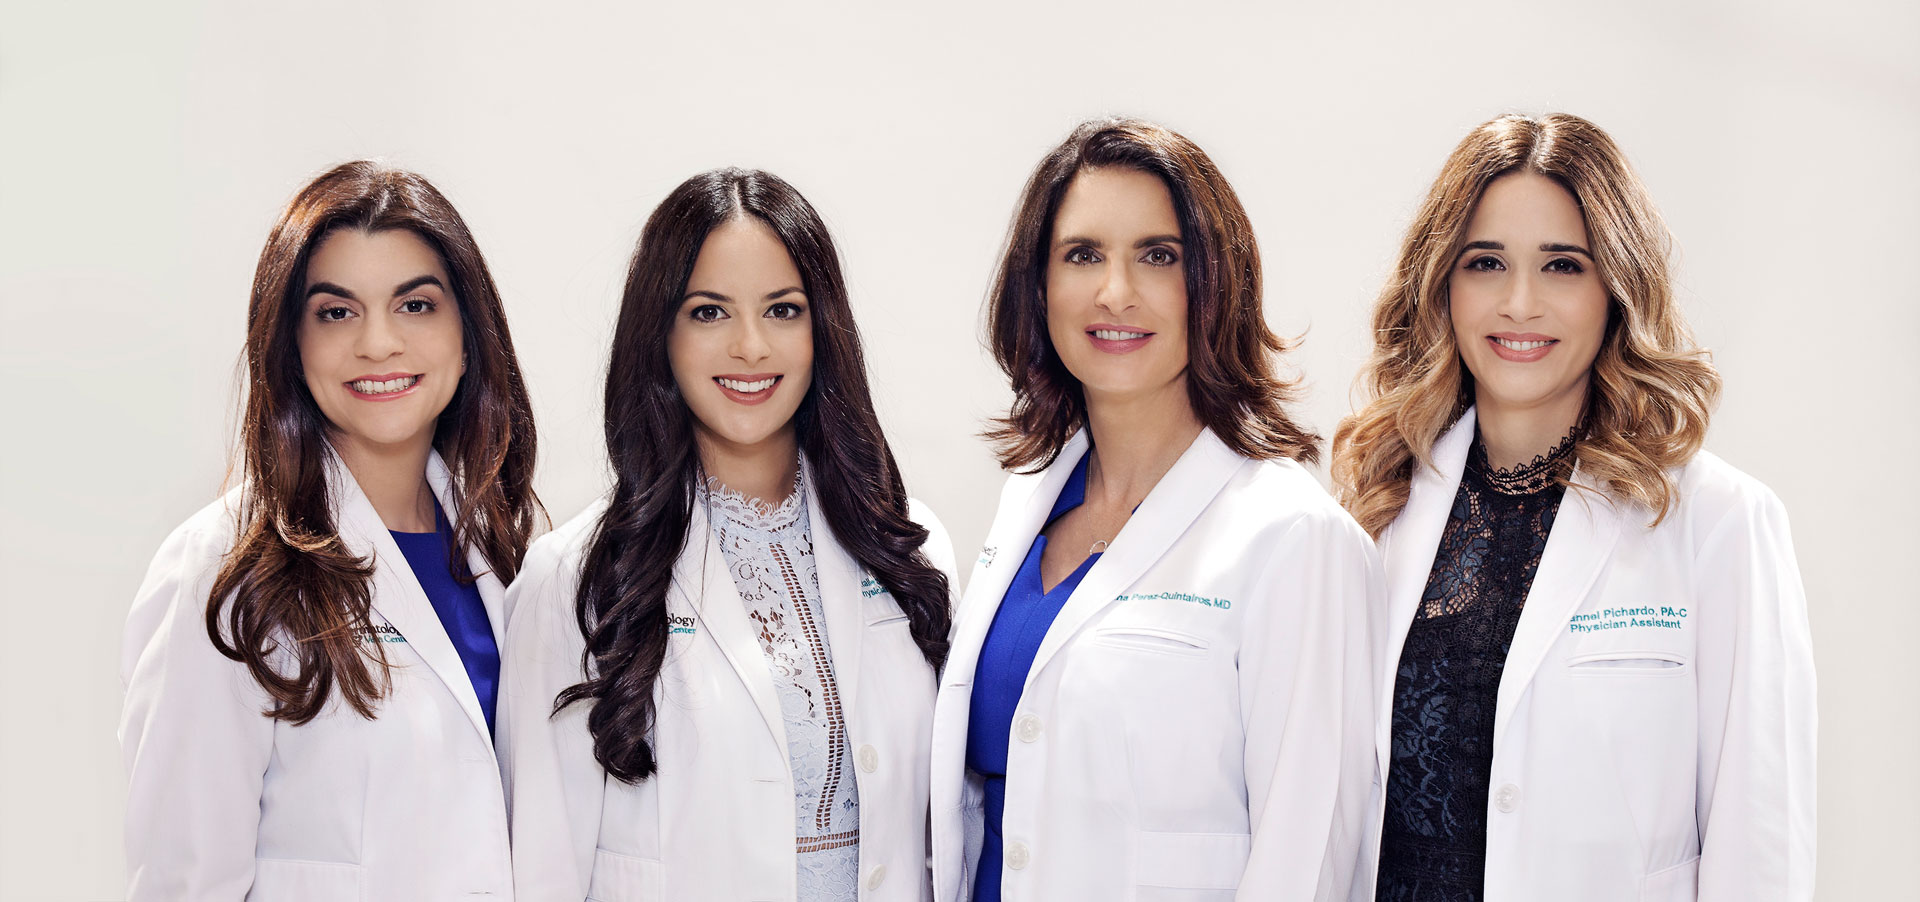 Sunset Dermatology's providers and staff corporate photograph taken at the South Miami location.